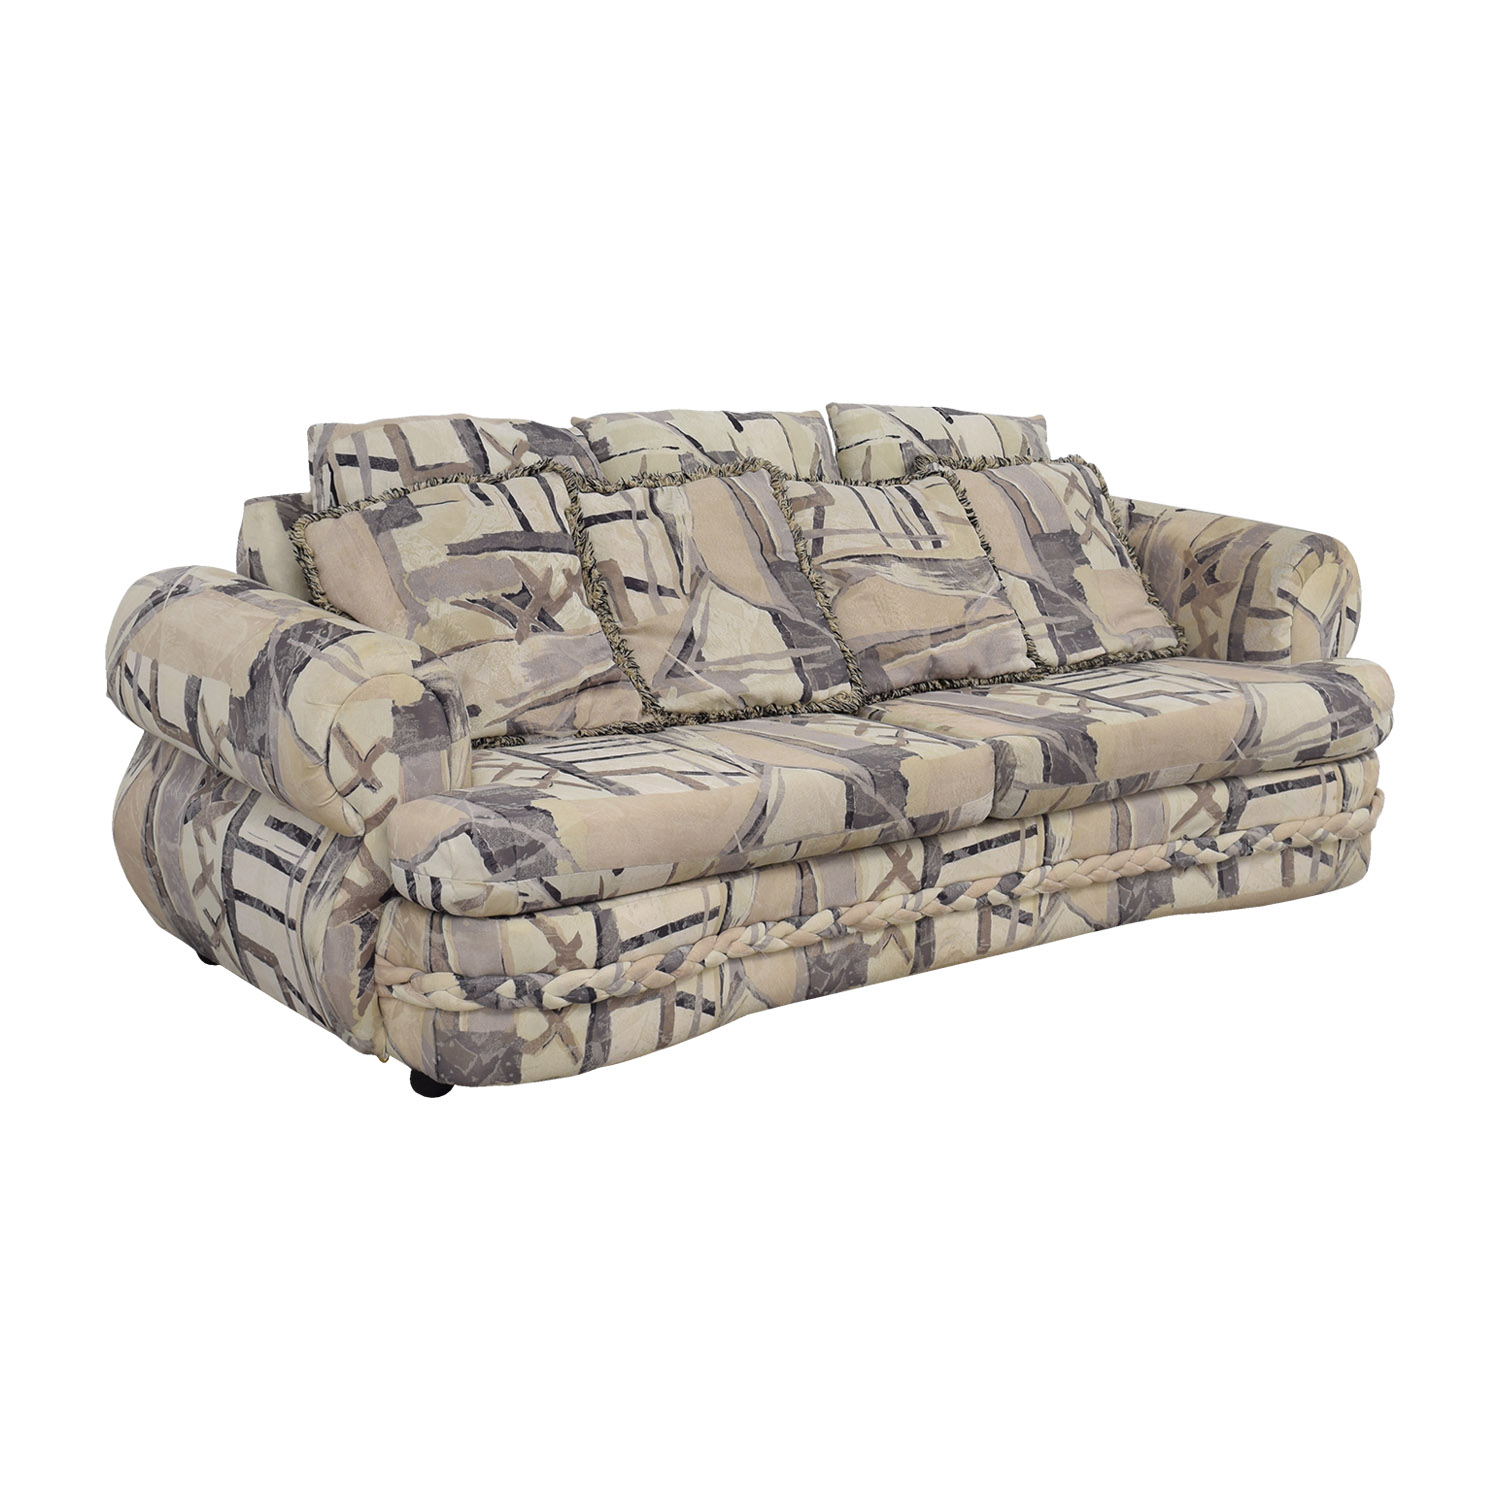 buy White Multi-Colored Two-Cushion Couch Sofas